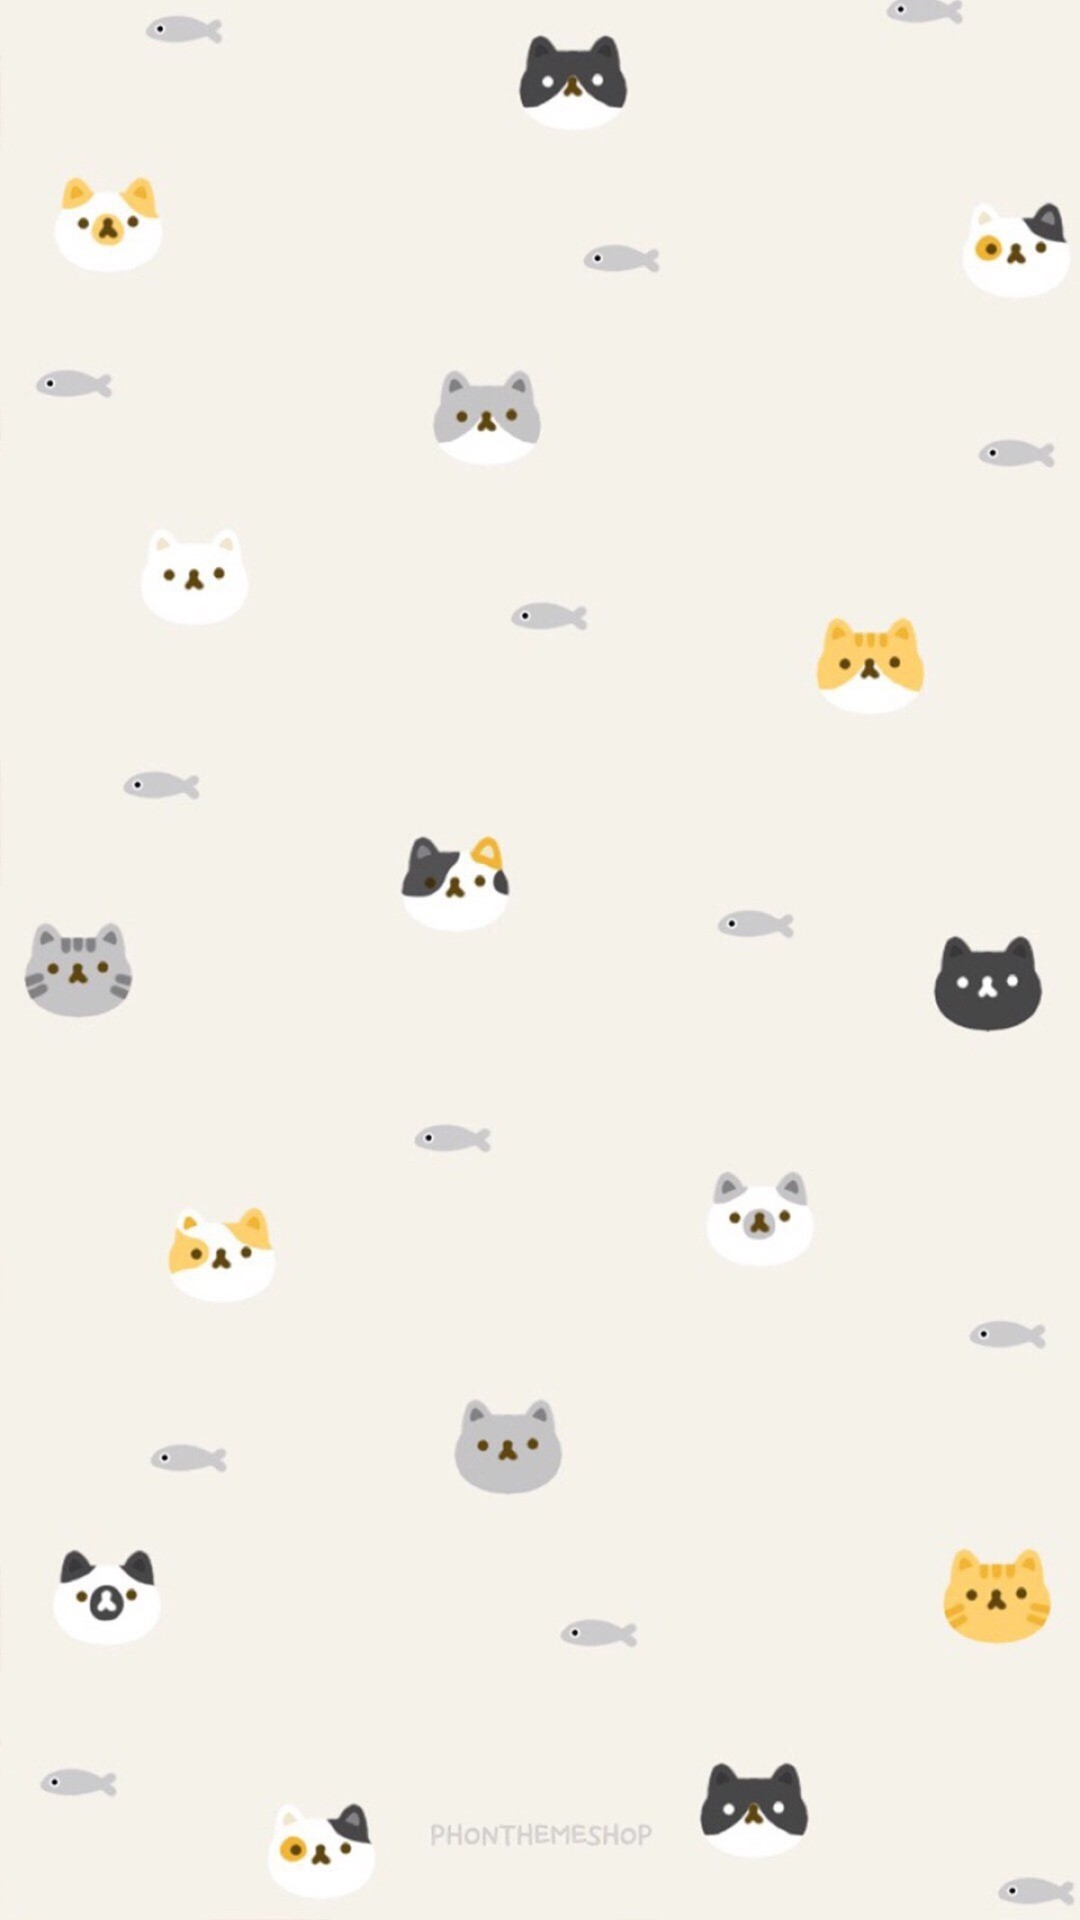 Cute wallpapers for phone backgrounds 71 images - Kawaii phone backgrounds ...